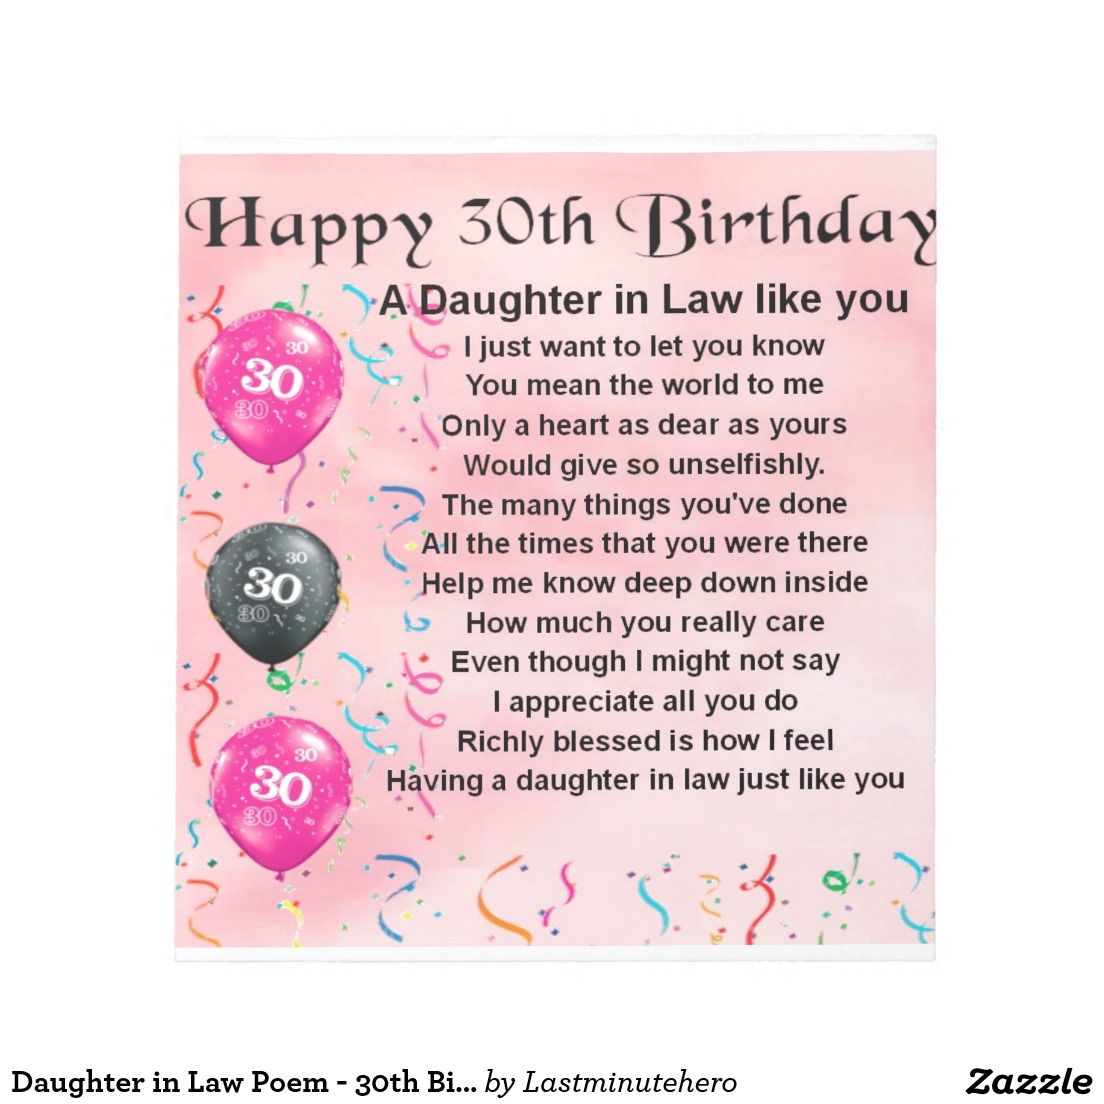 Daughter In Law Poem 30th Birthday Notepad Zazzle Co Uk